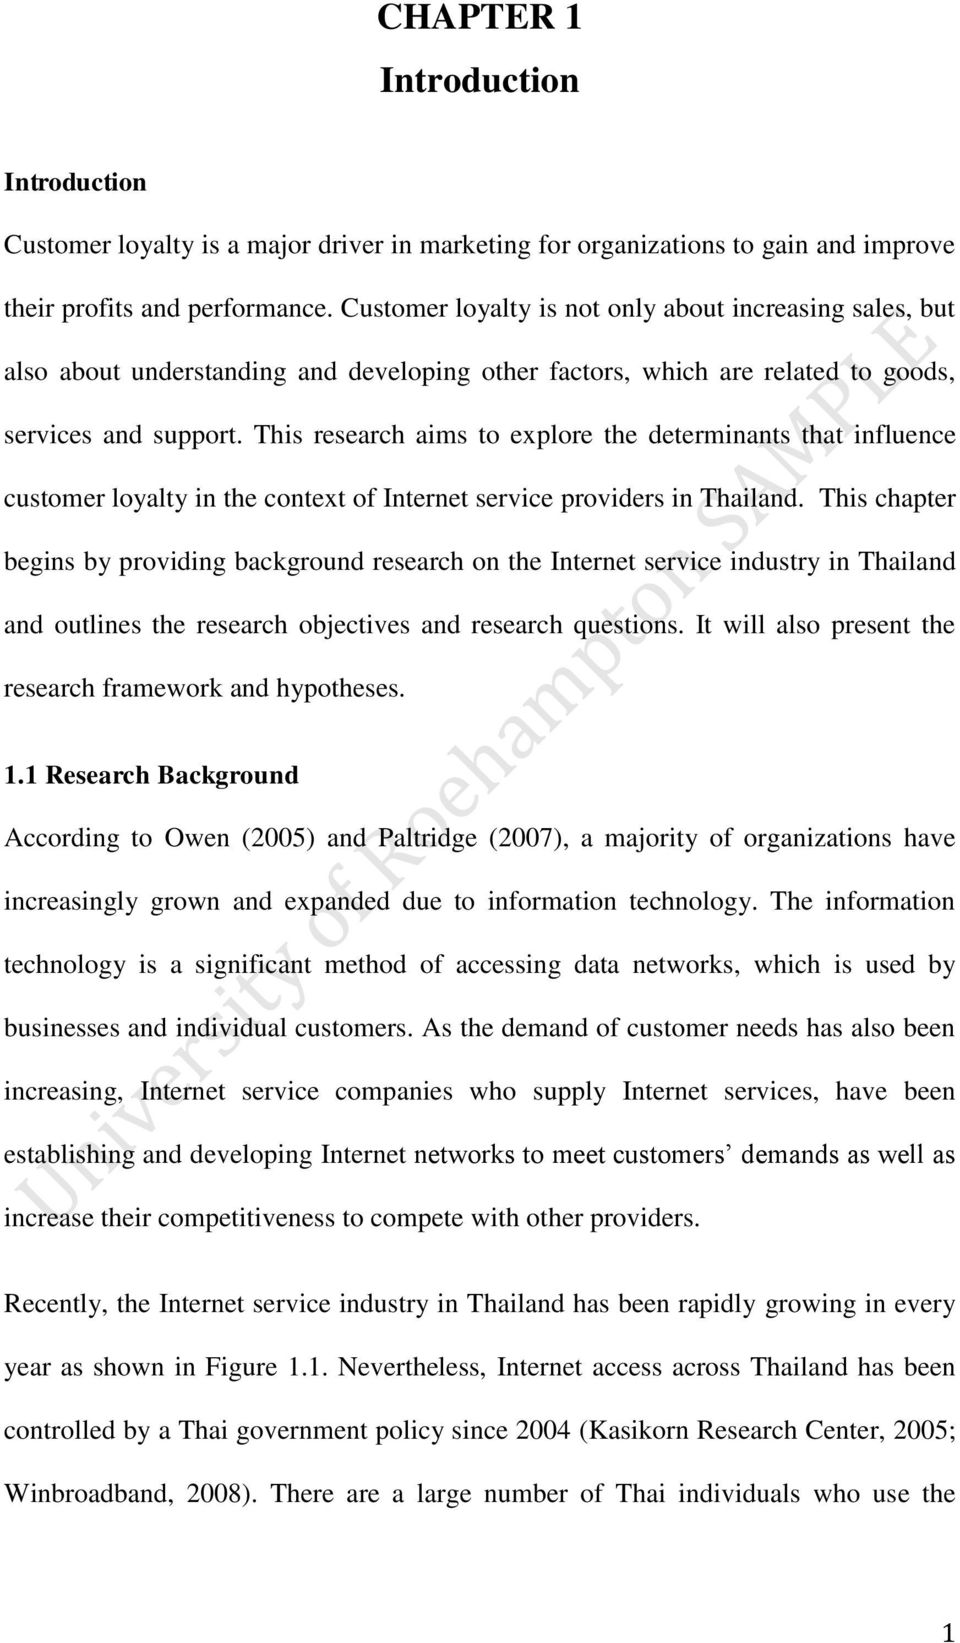 This research aims to explore the determinants that influence customer loyalty in the context of Internet service providers in Thailand.